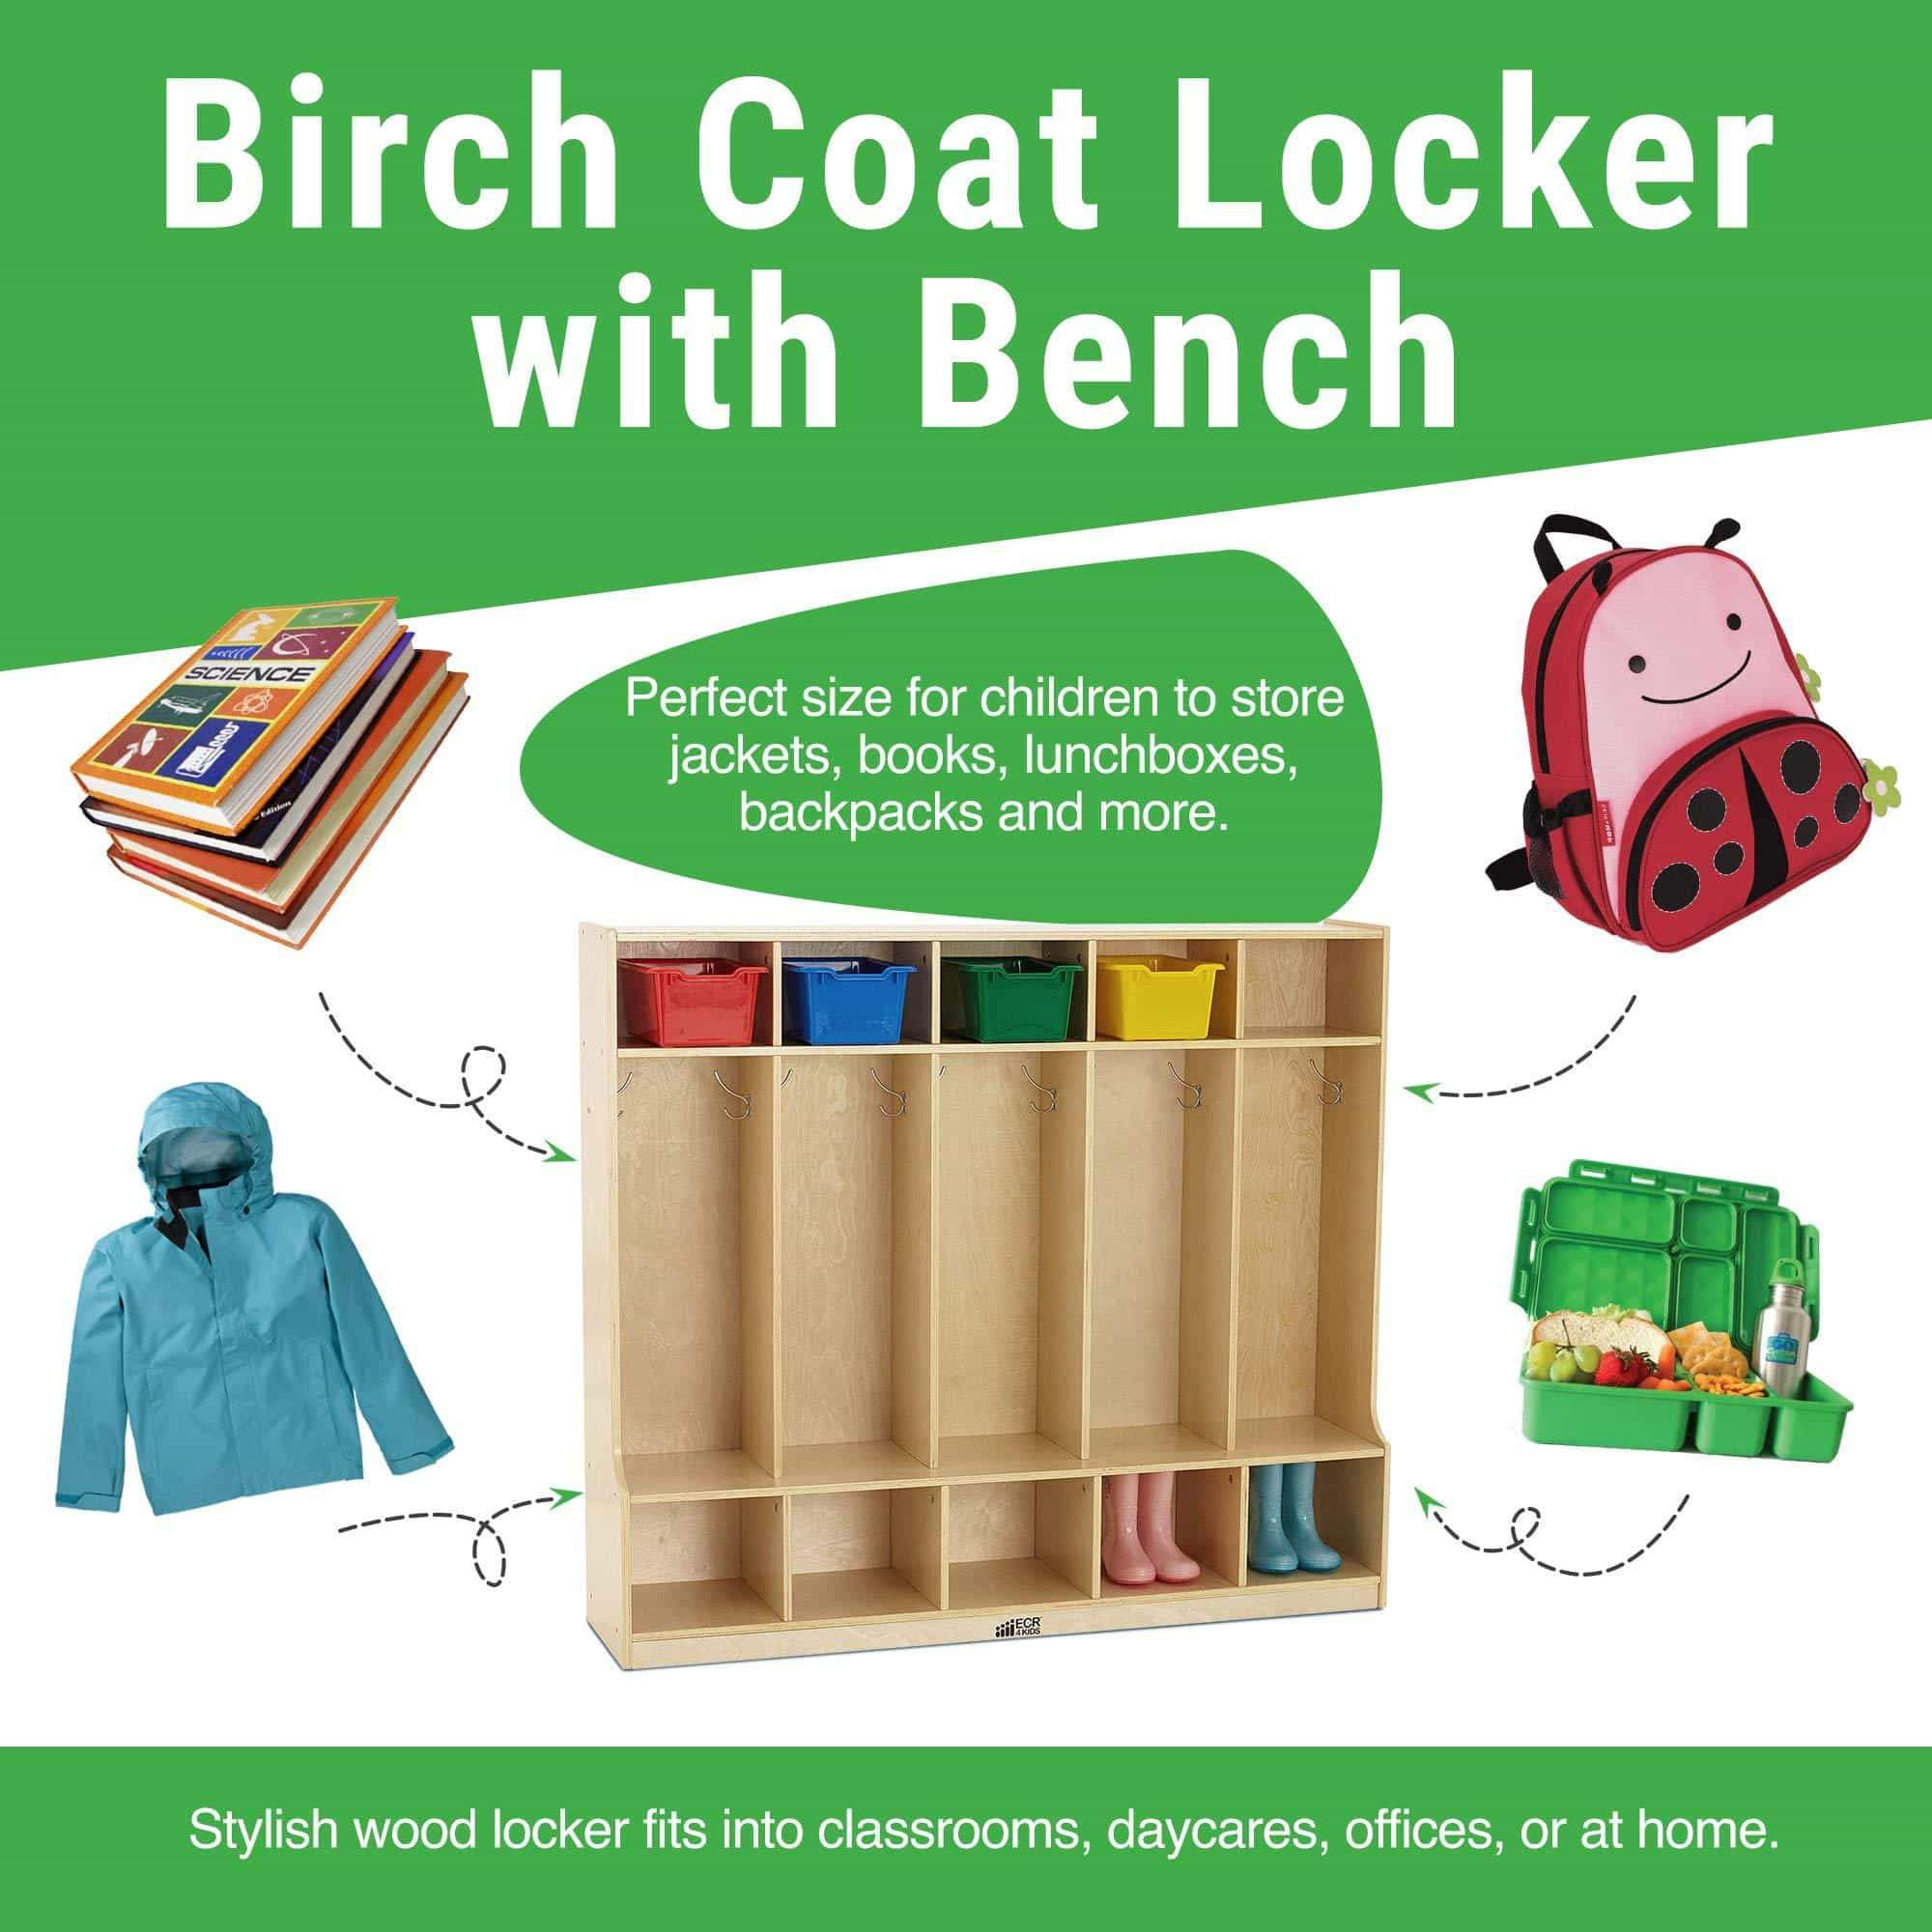 Order now ecr4kids birch school coat locker for toddlers and kids 5 section coat locker with bench and cubby storage shelves commercial or personal use certified and safe 48 high natural